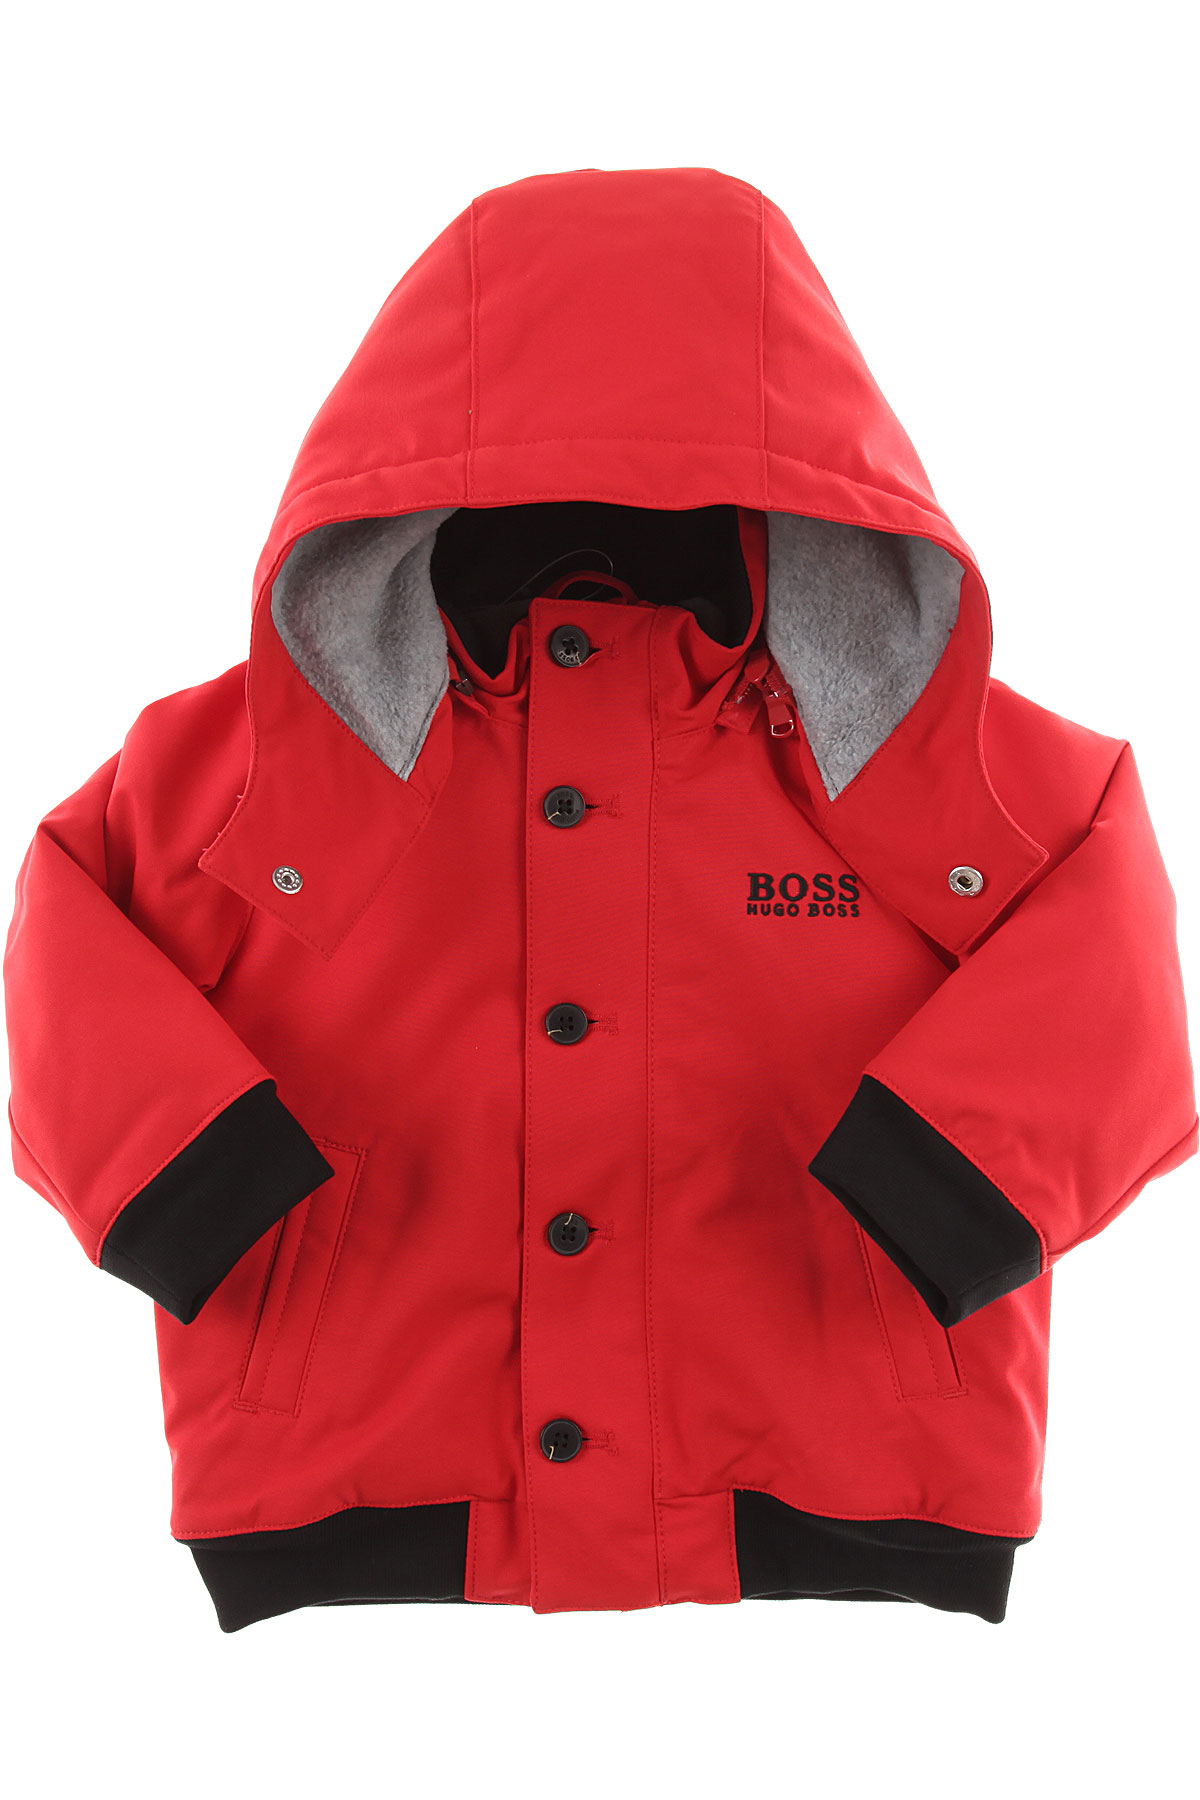 Image of Hugo Boss Baby Coats for Boys, Red, polyester, 2017, 12M 2Y 3Y